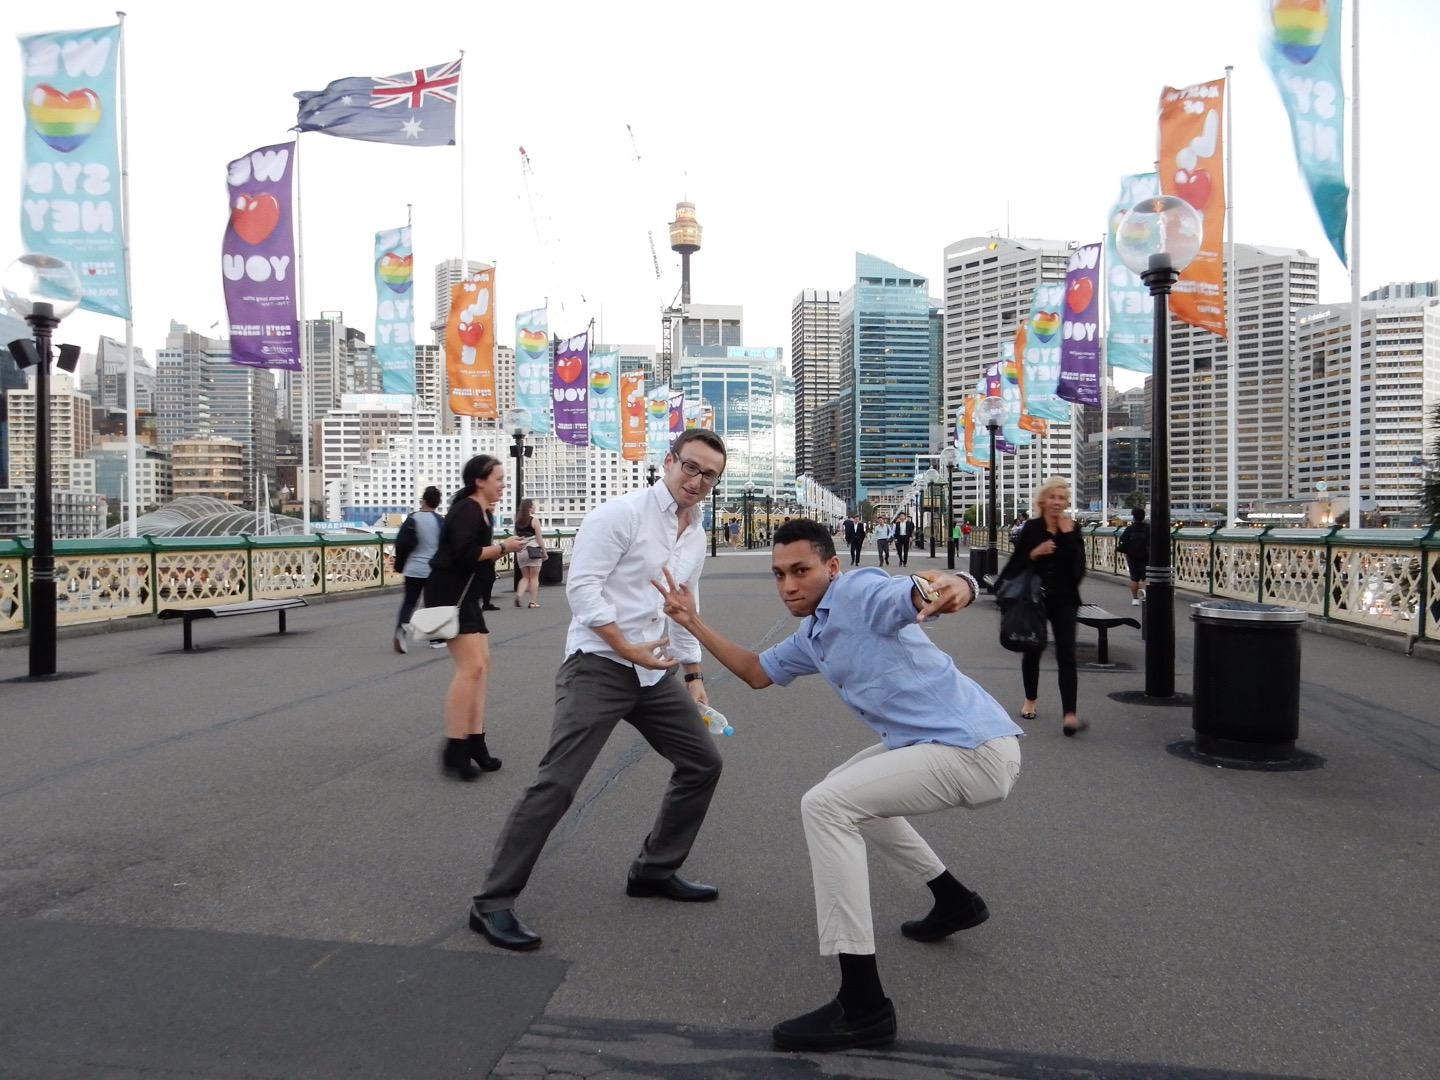 CAPAStudyAbroad_Sydney_Spring2015_From_Kristina_Worm_-_posing_Ian_James_and_another_student.jpg